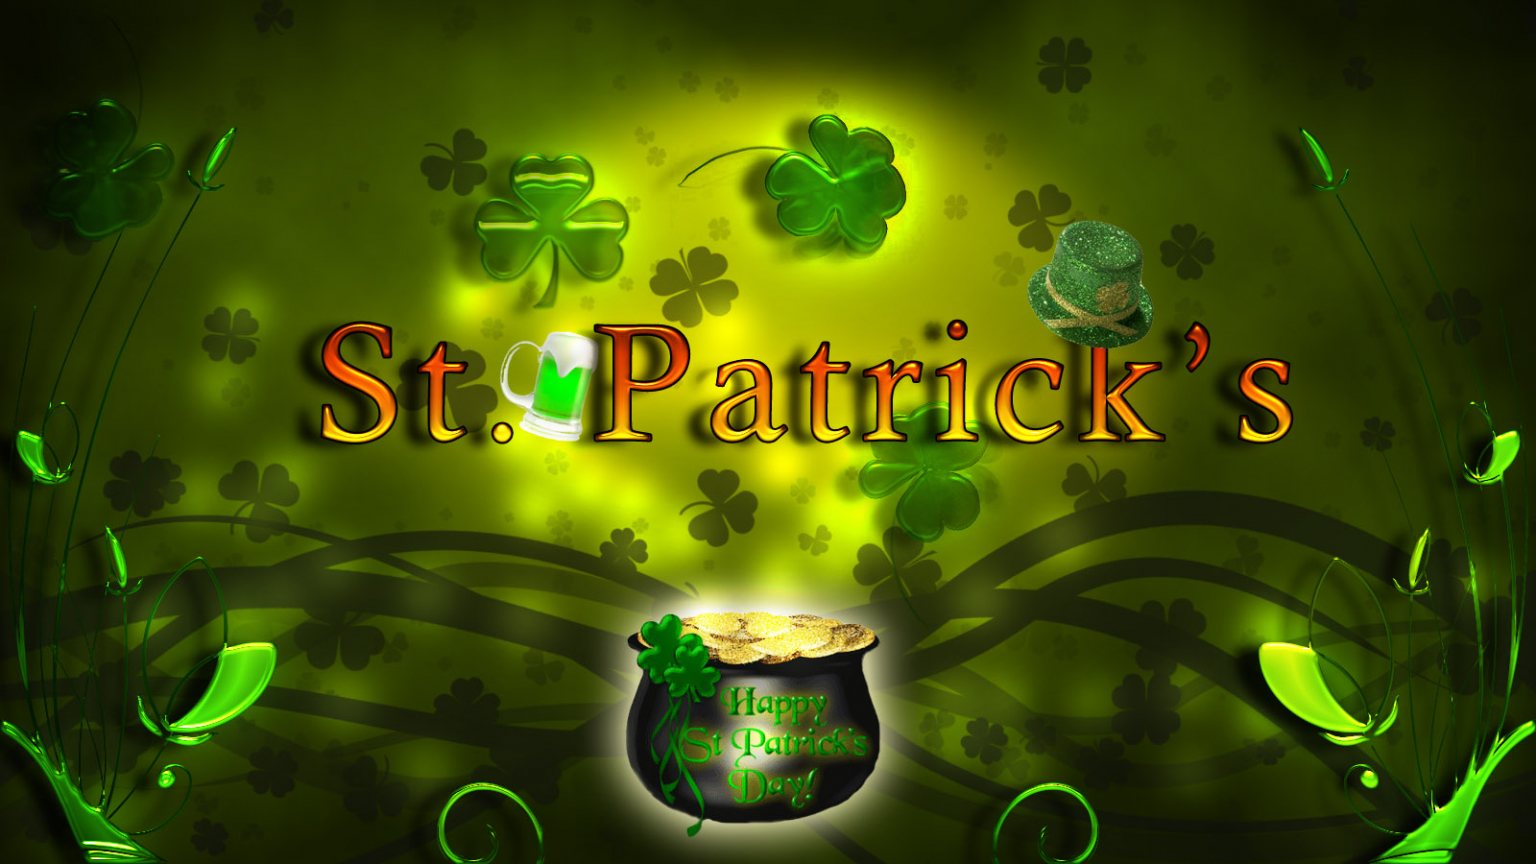 Free Download St Patricks Day Wallpaper Forwallpapercom 1600x900